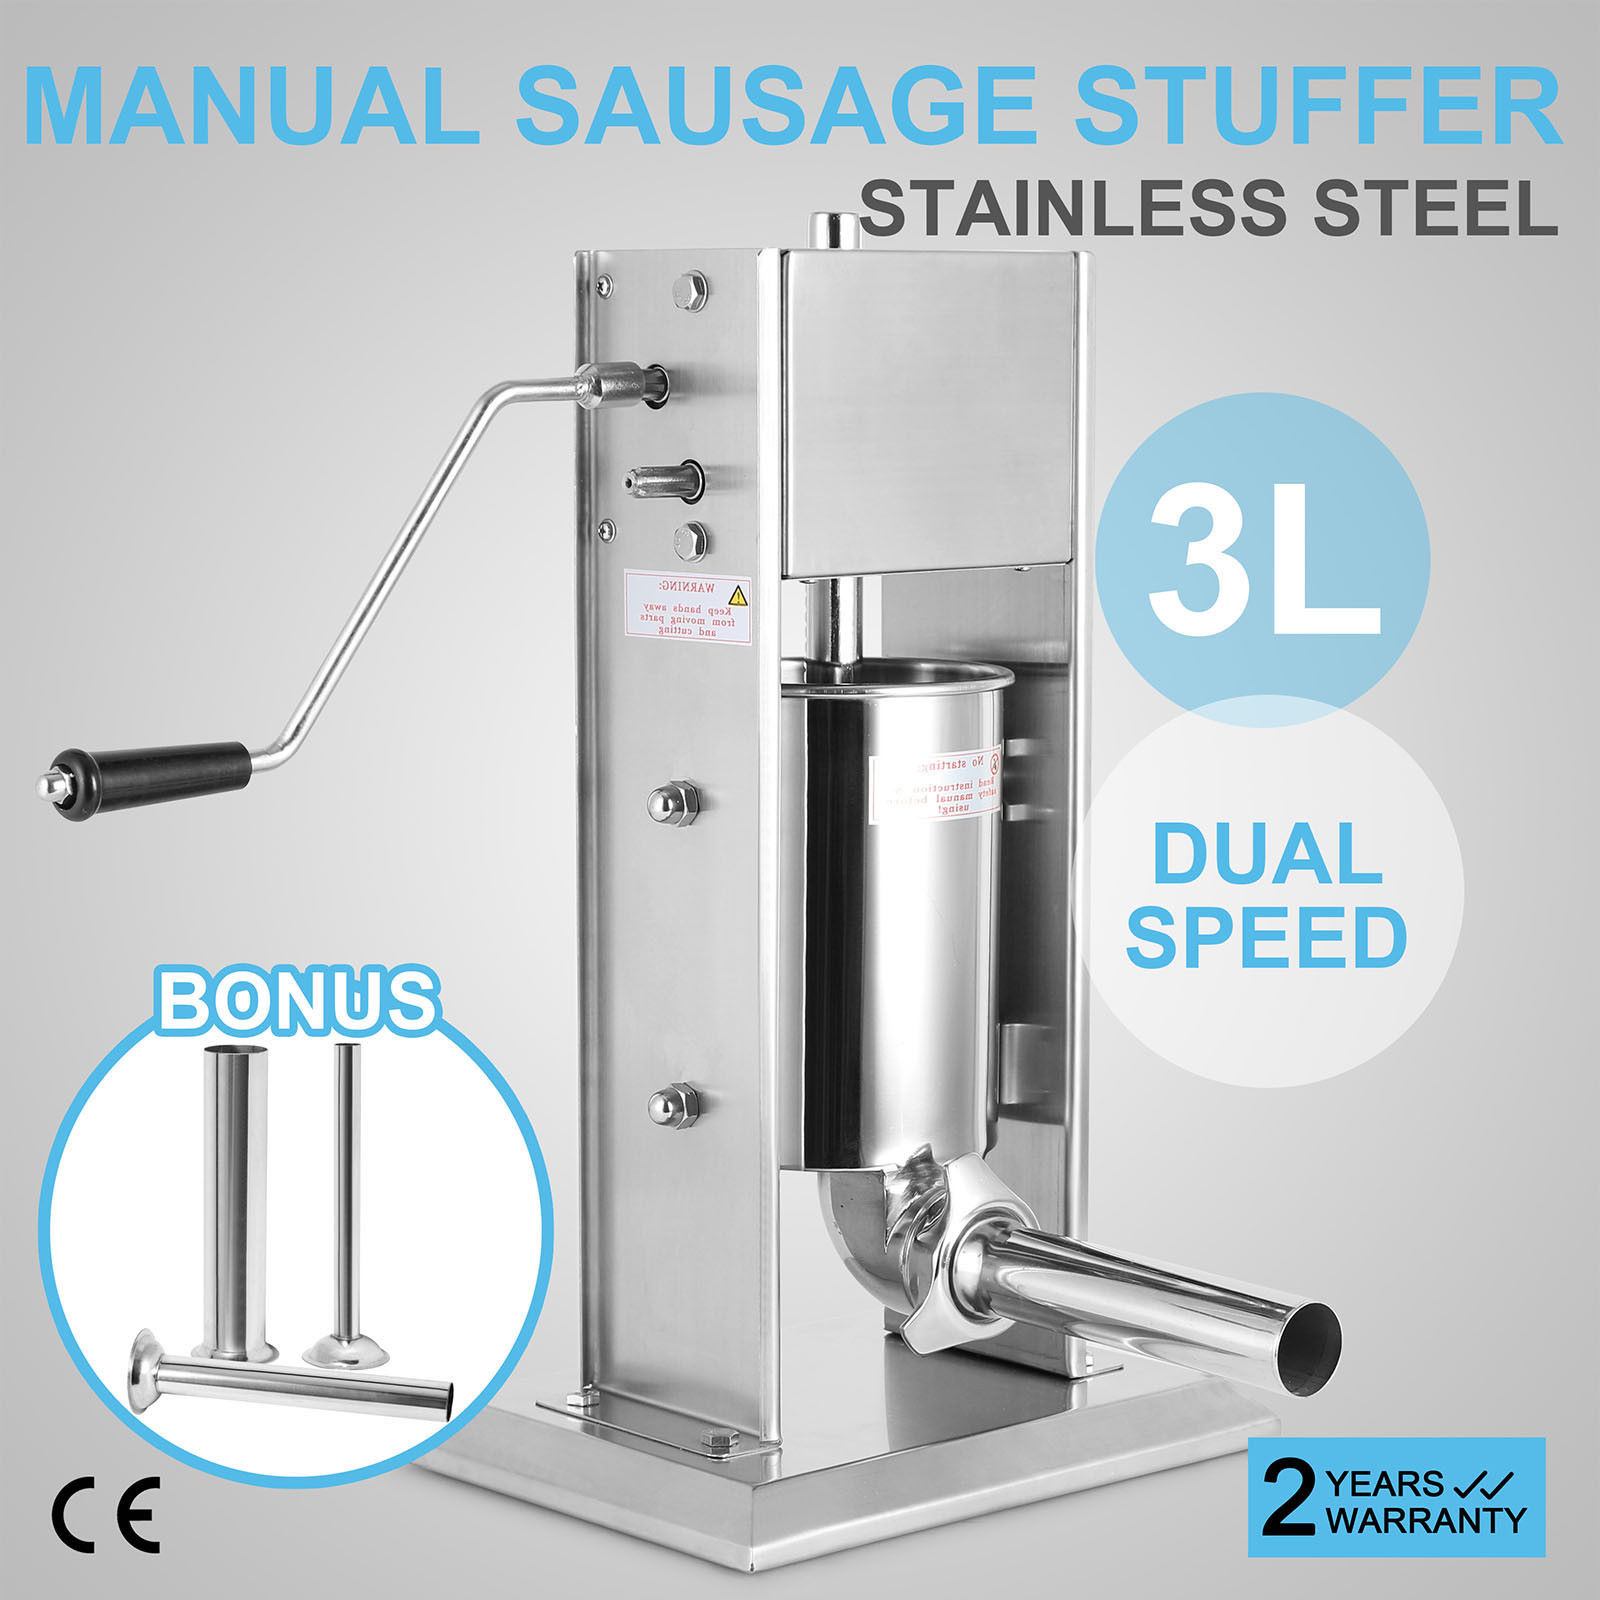 3L Vertical Commercial Sausage Stuffer Two Speed Stainless Steel Meat Press3L Vertical Commercial Sausage Stuffer Two Speed Stainless Steel Meat Press